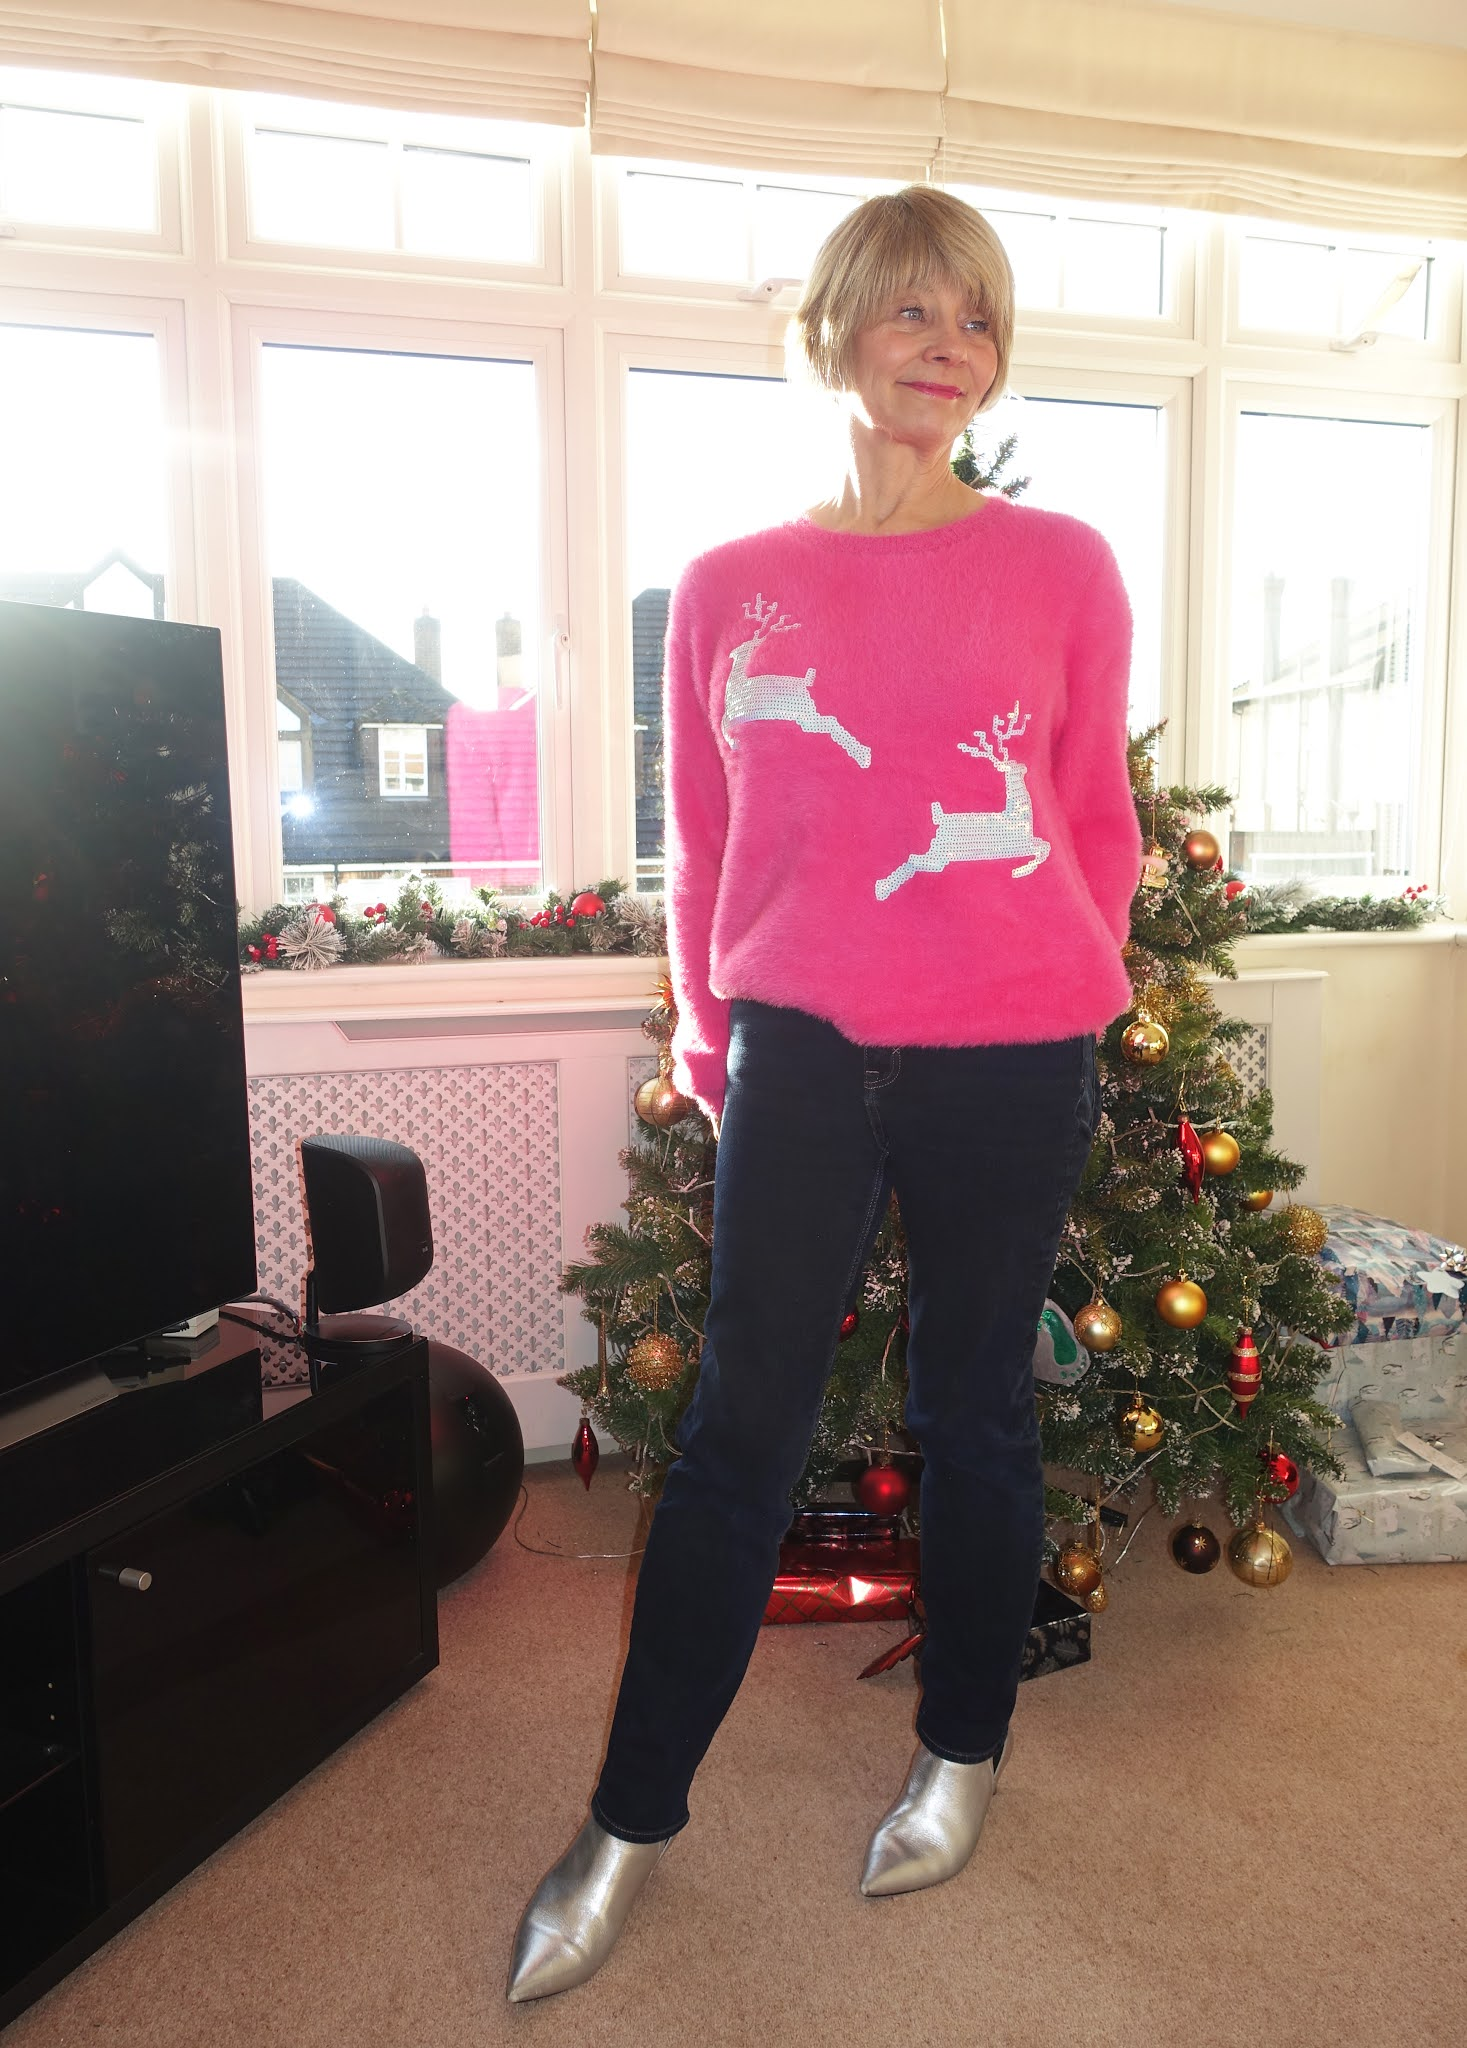 Is This Mutton blogger Gail Hanlon in pink jumper with silver reindeer for Christmas 2020